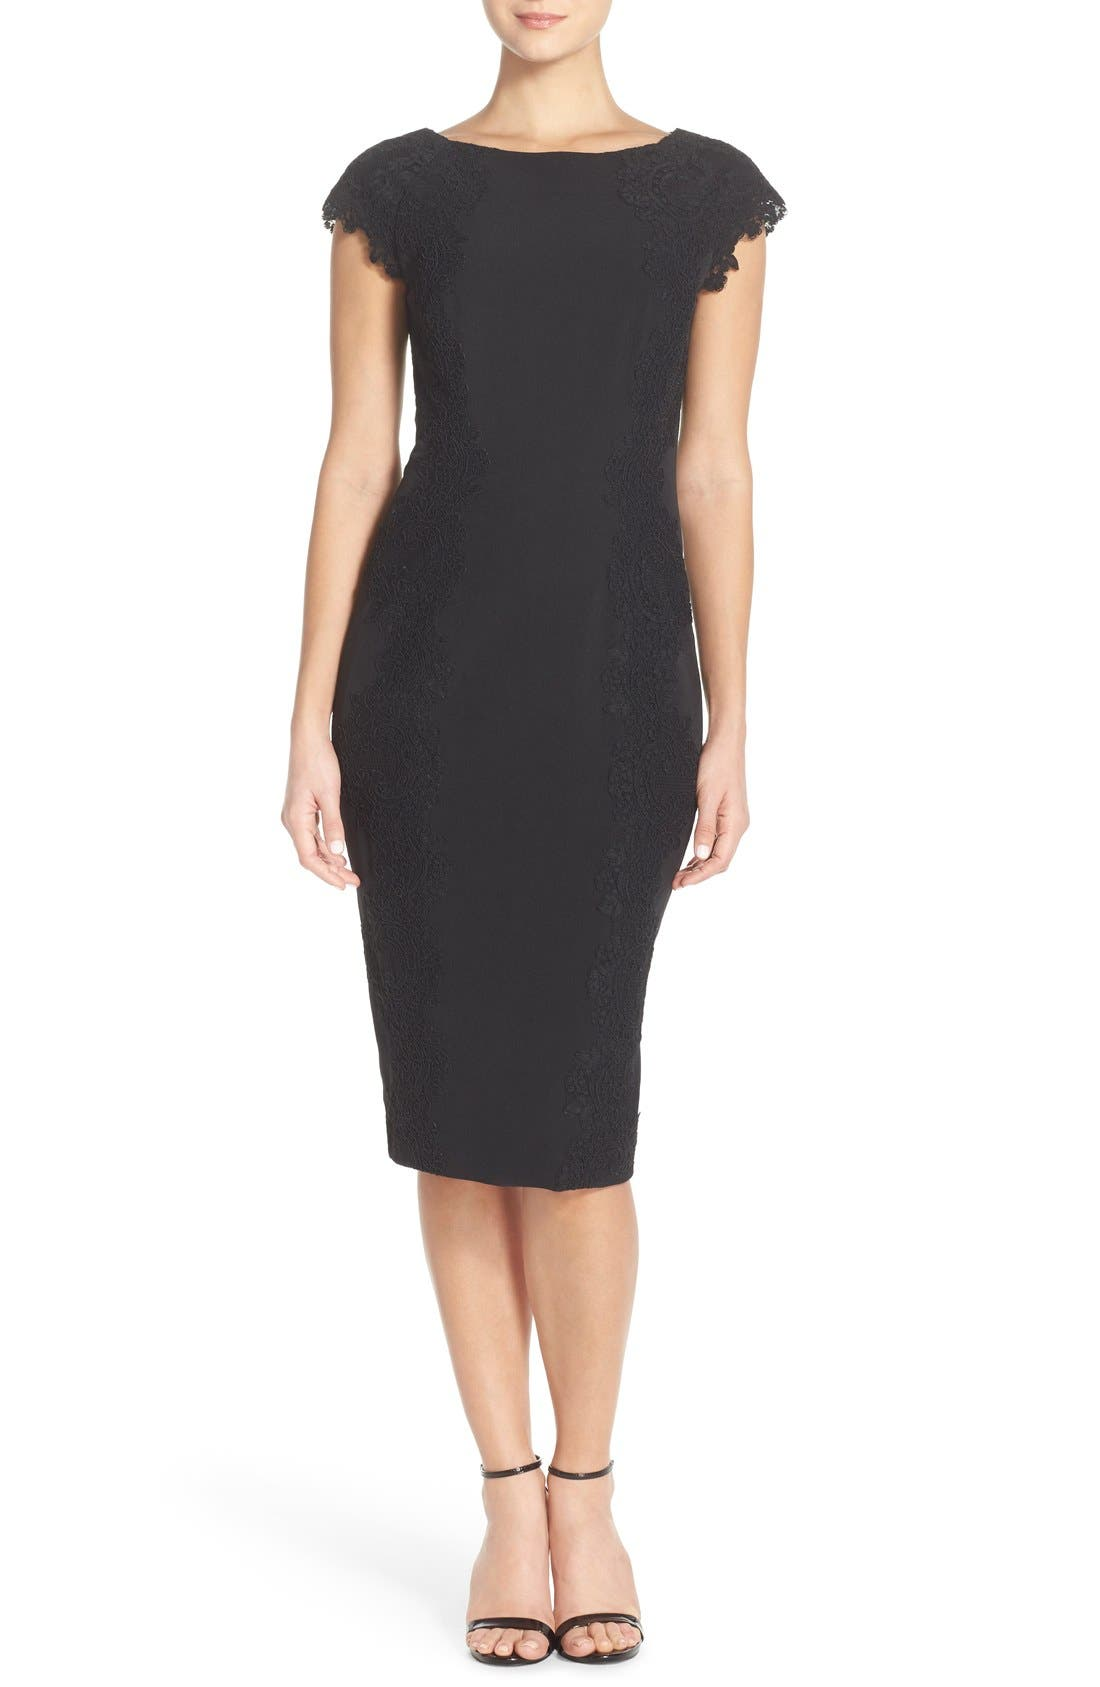 Alternate Image 1 Selected - Maggy London Lace Detail Crepe Sheath Dress (Regular & Petite)